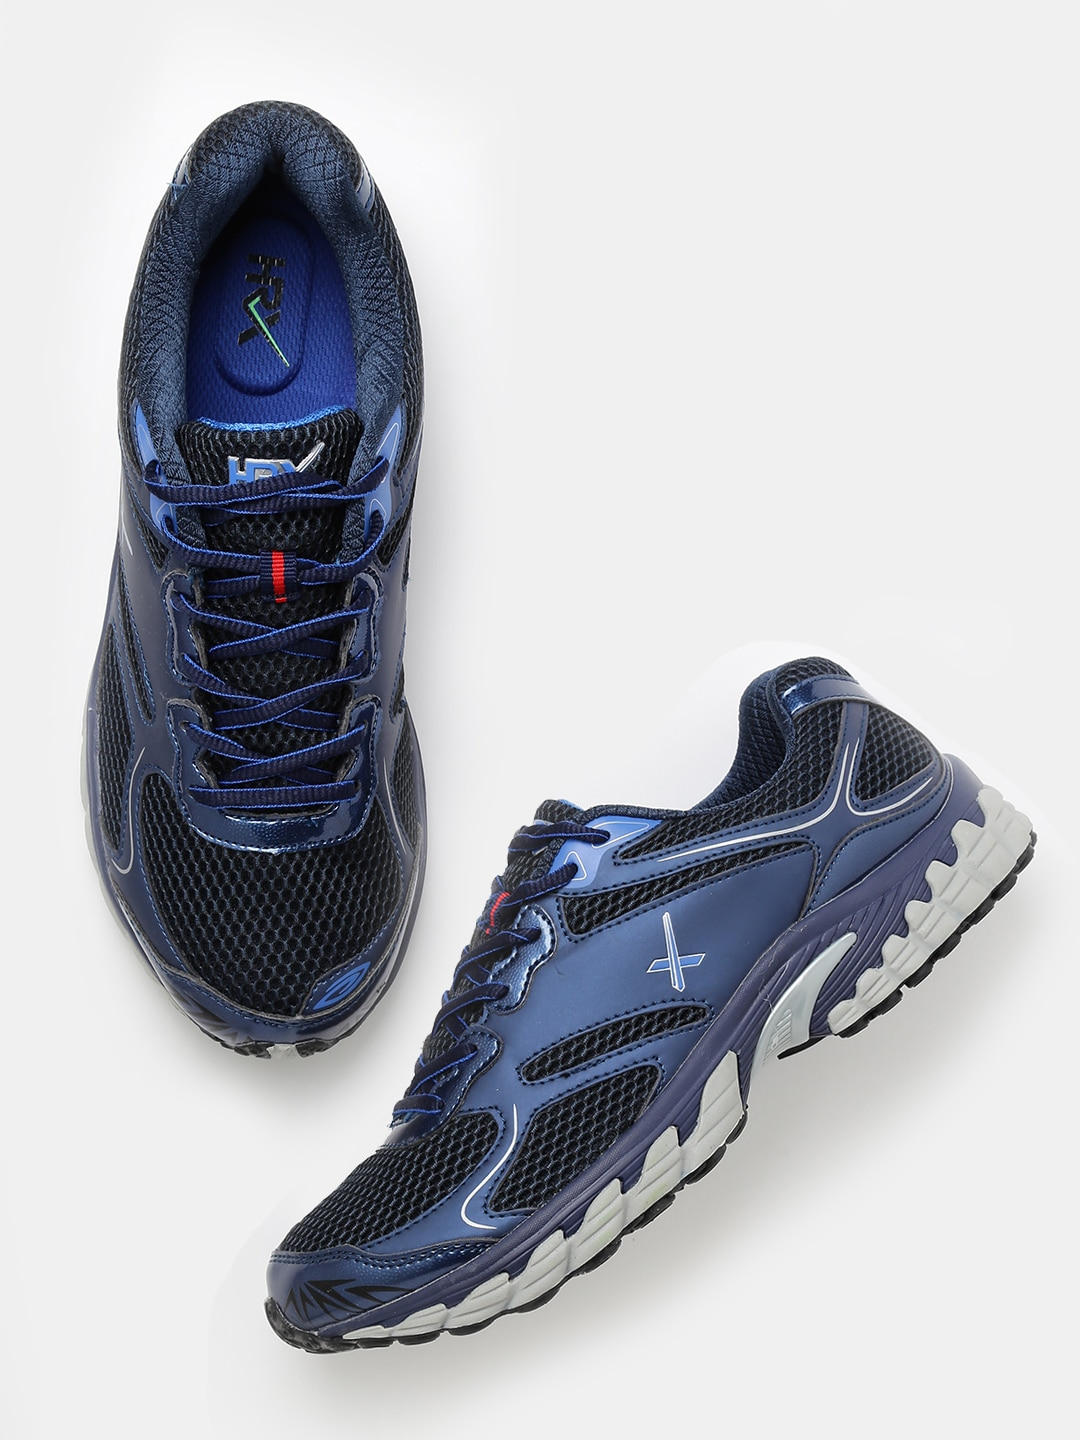 7c23539ba Sports Shoes for Men - Buy Men Sports Shoes Online in India - Myntra